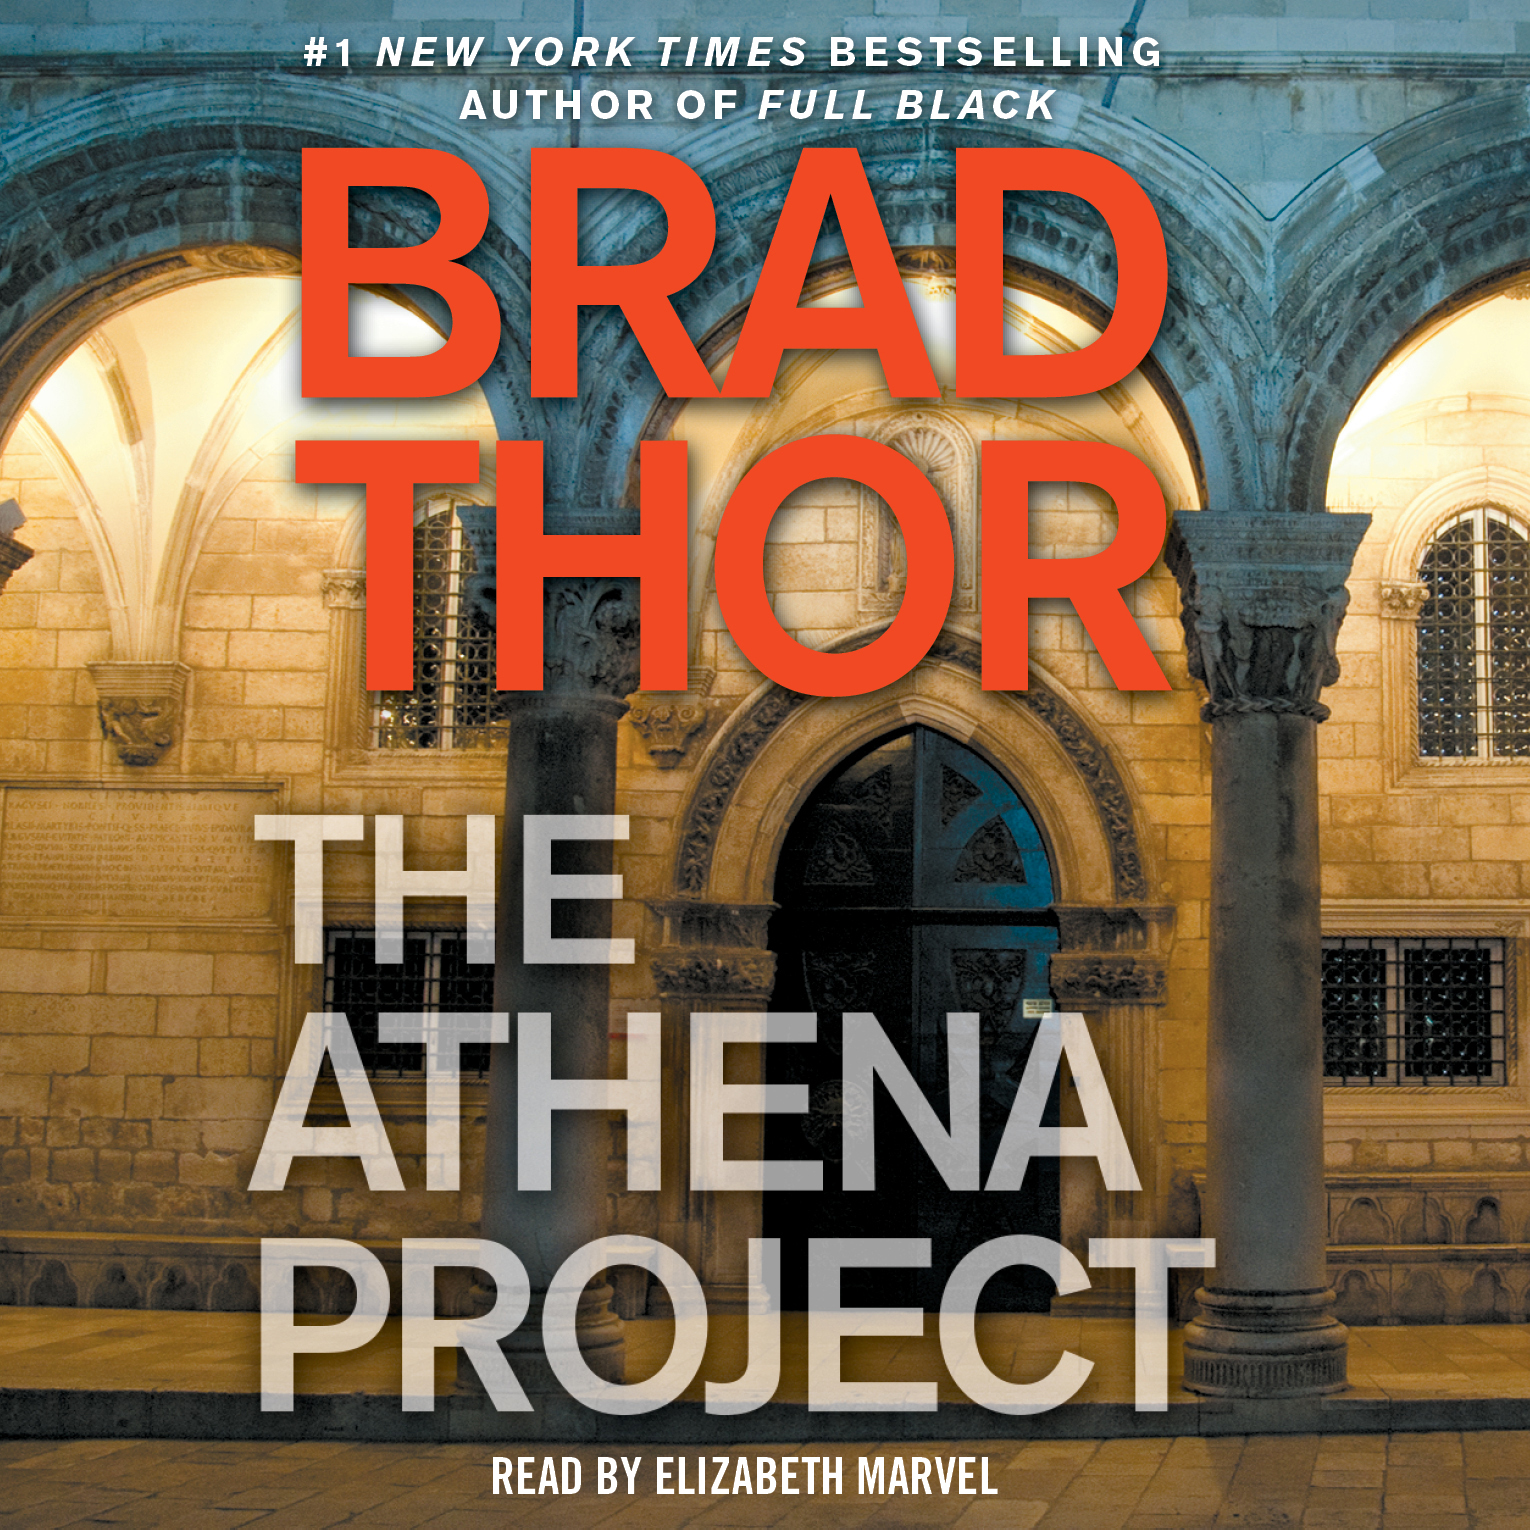 the athena project Join the ultimate reader experience with brad thor as he takes a look behind the scenes of the athena project.